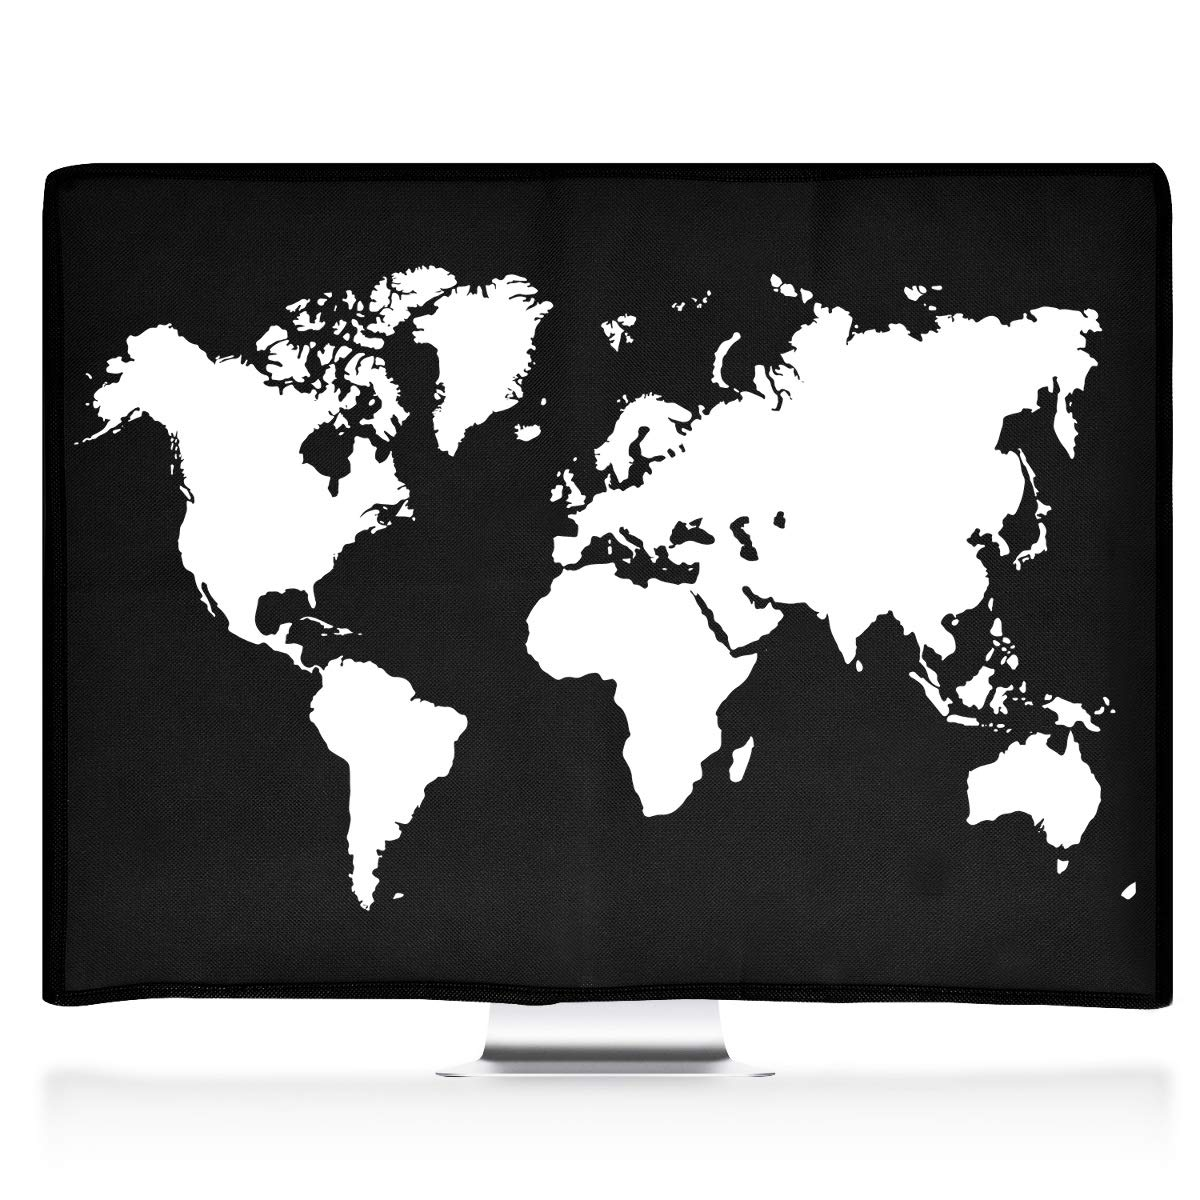 White//Black kwmobile Monitor Cover for Apple iMac 21.5 Dust Cover PC Monitor Case Screen Display Protector